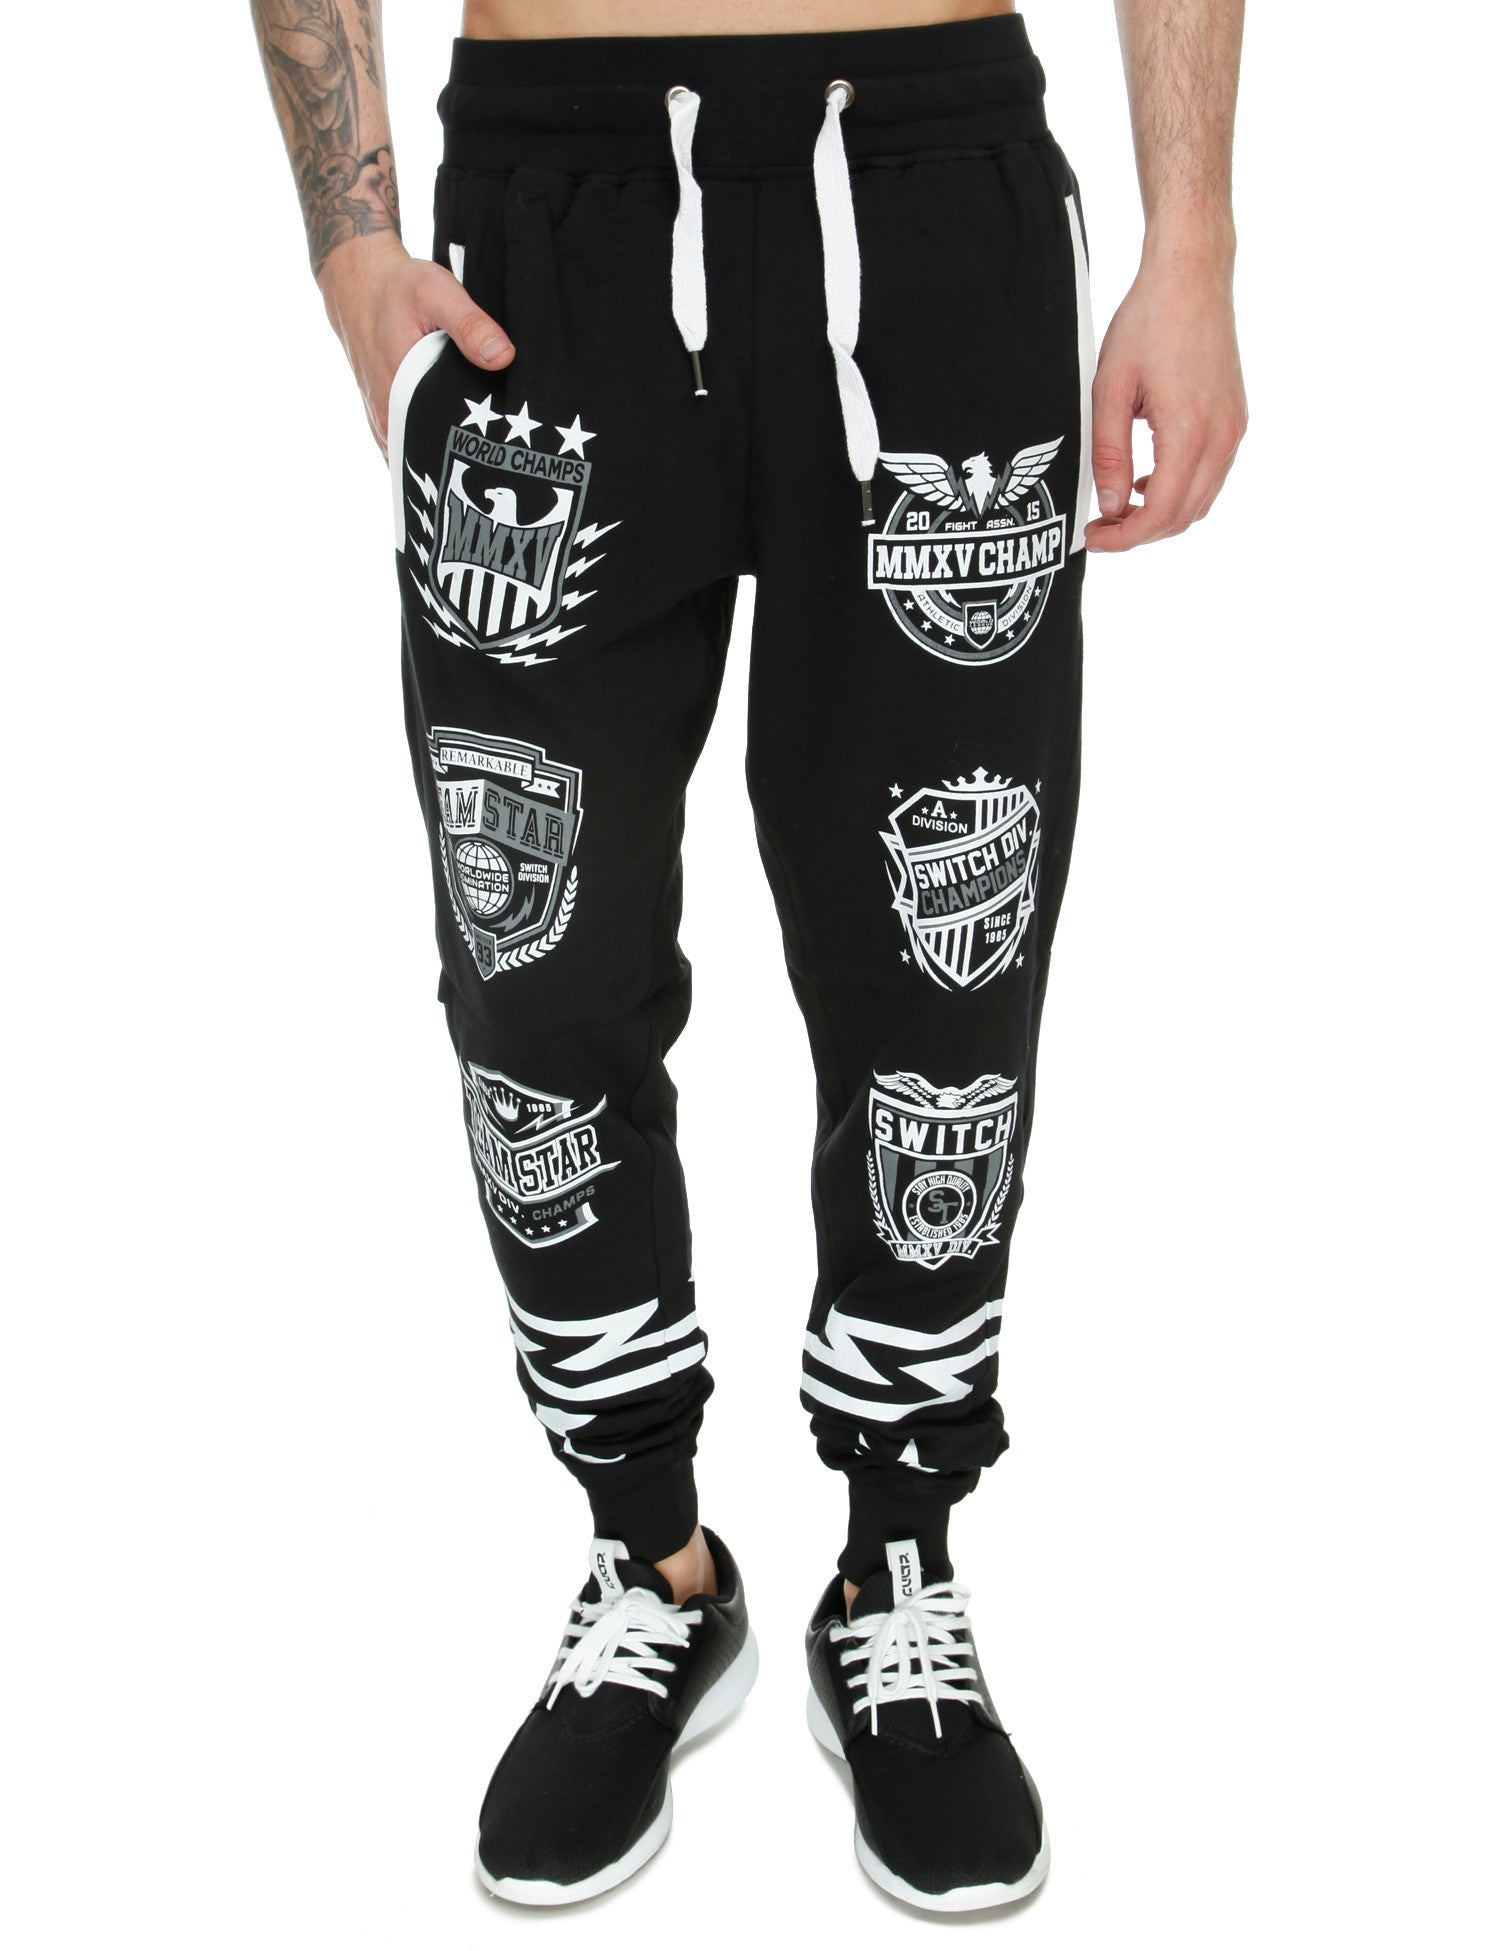 Switch Varsity Patch Sweatpant SF5420 Black